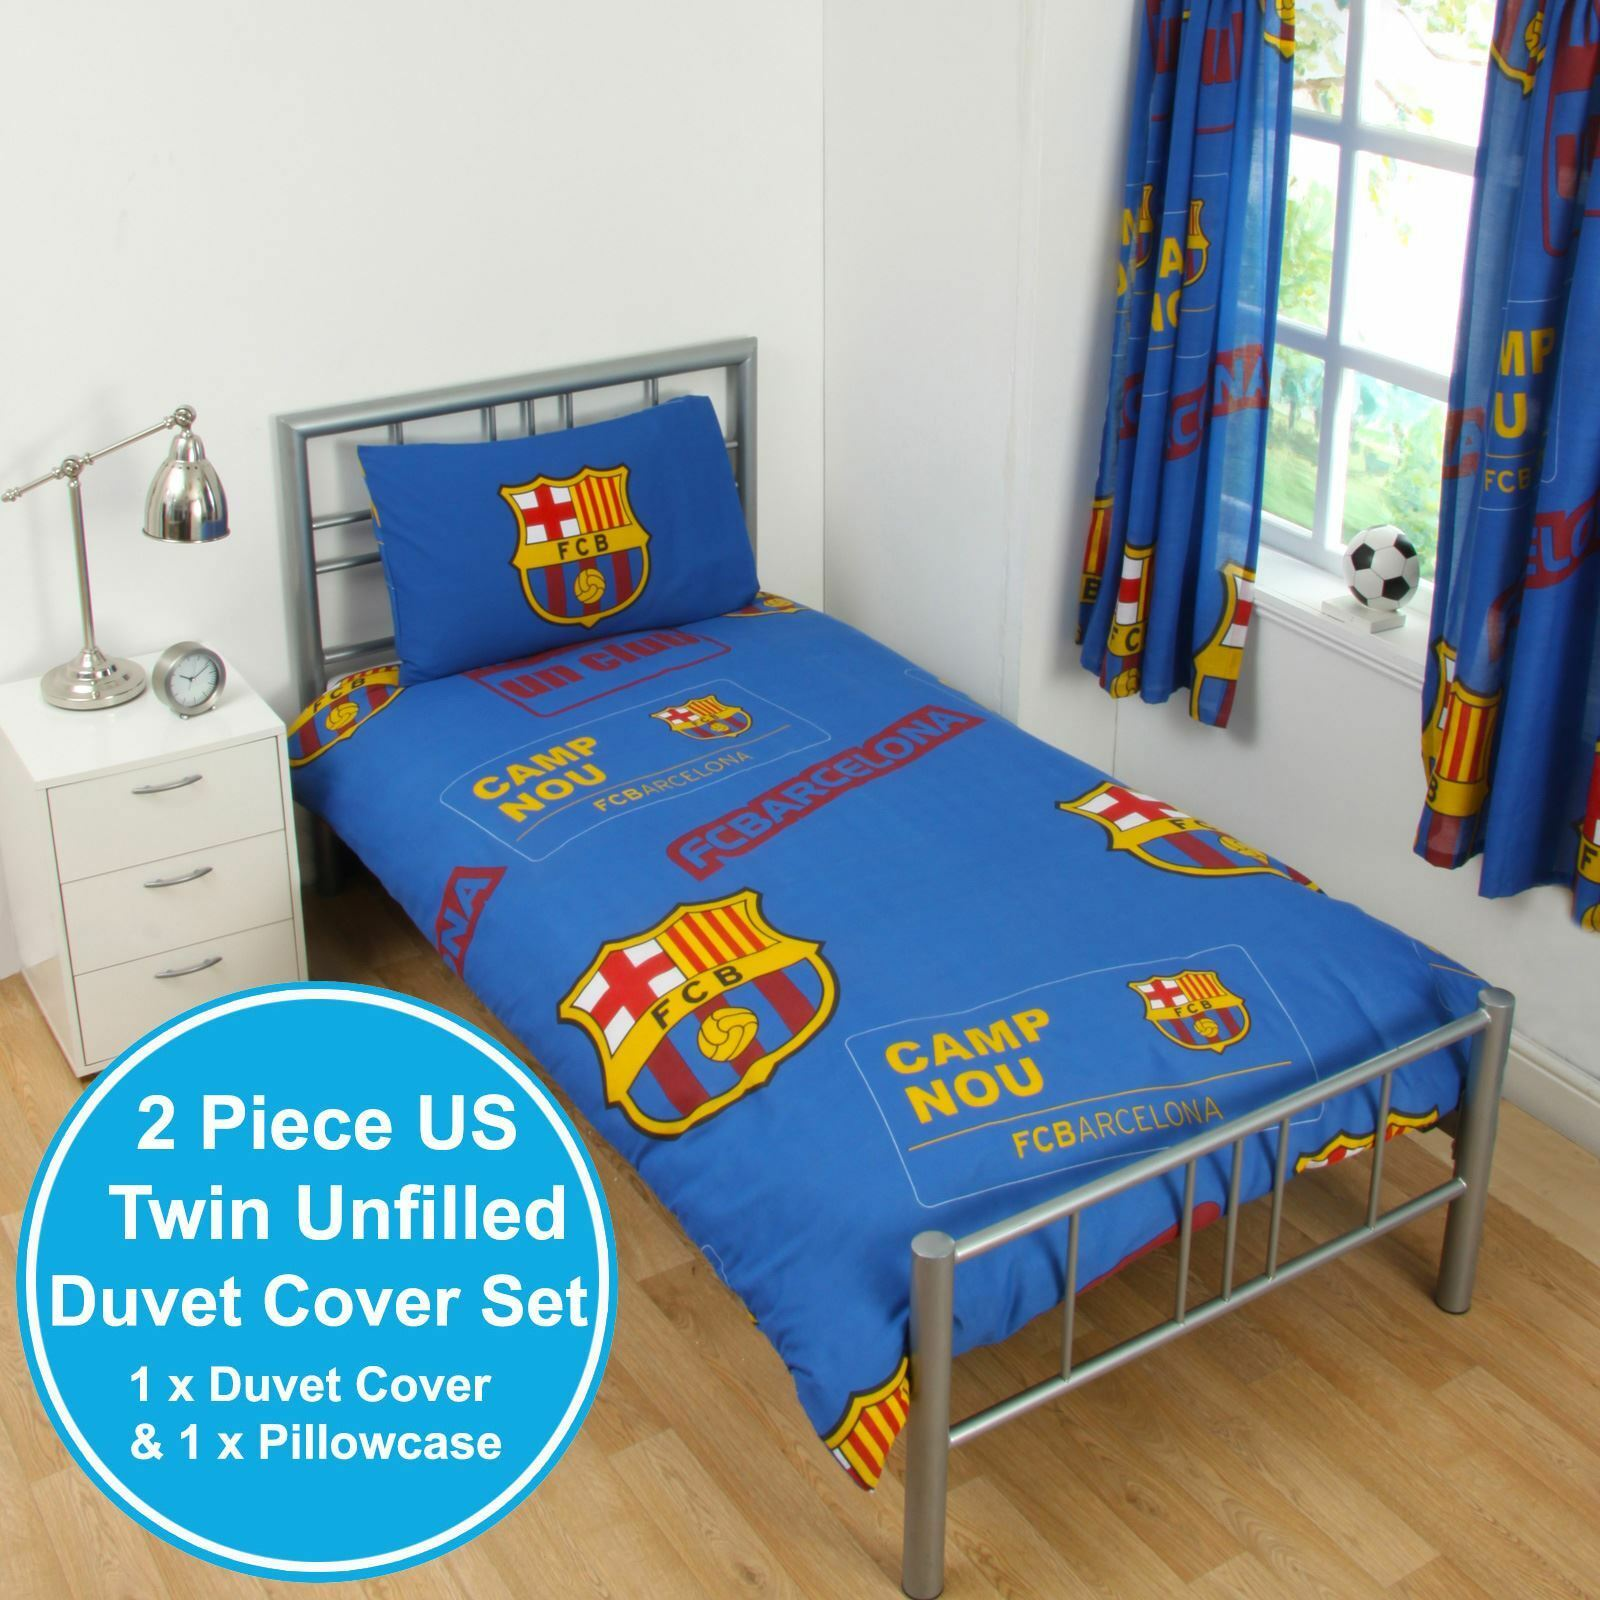 FC BARCELONA PATCH UK SINGLE   US TWIN UNFILLED DUVET COVER & PILLOWCASE SET NEW